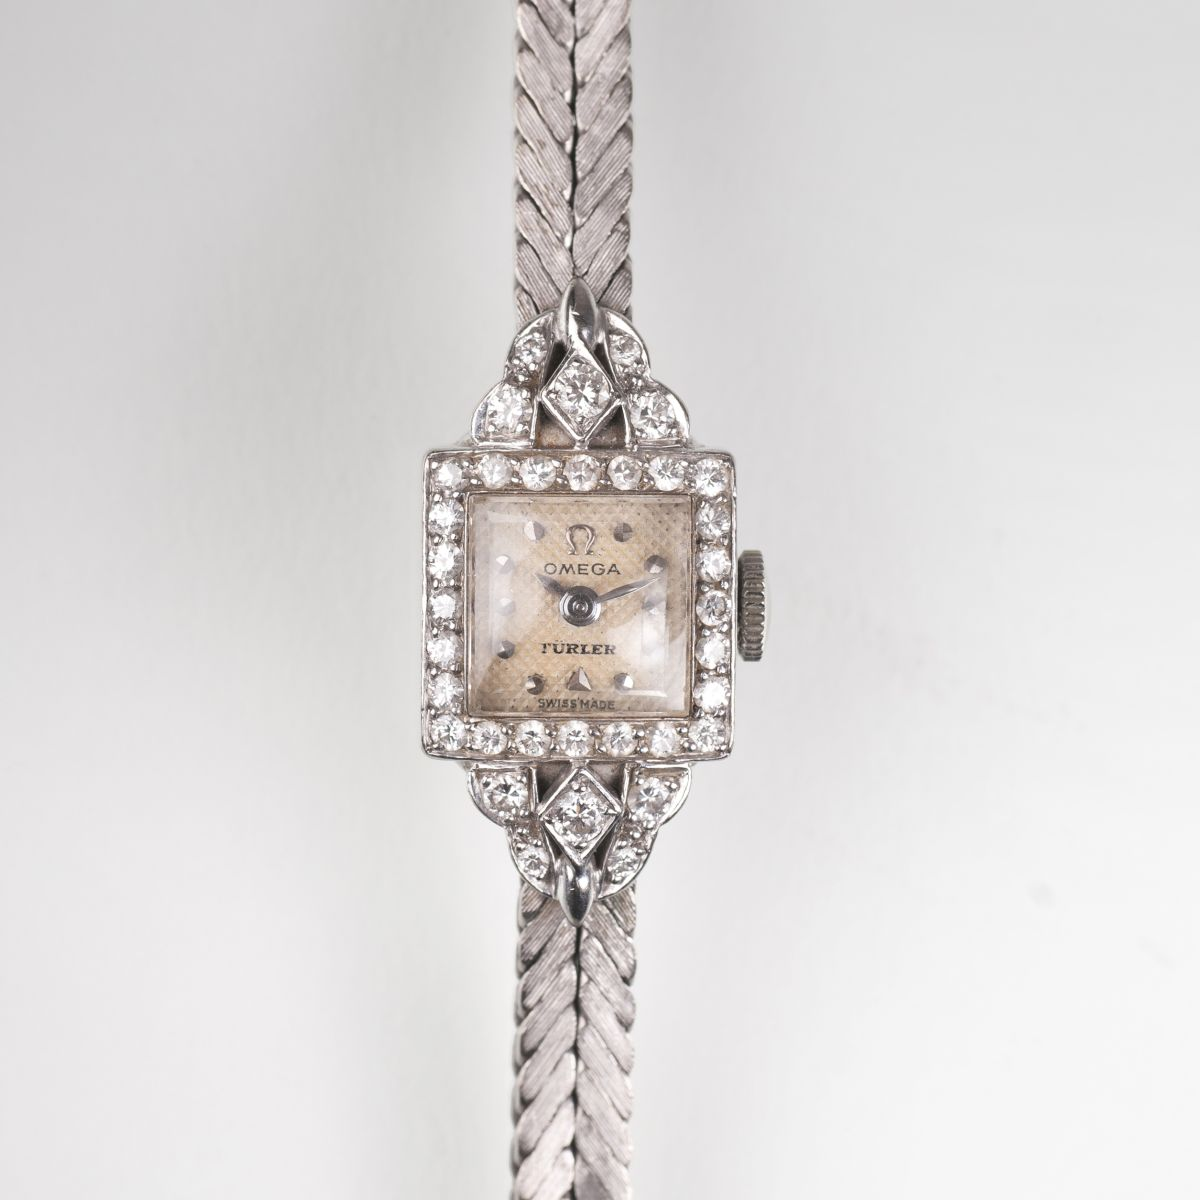 A Vintage ladie's watch with diamonds by Türler